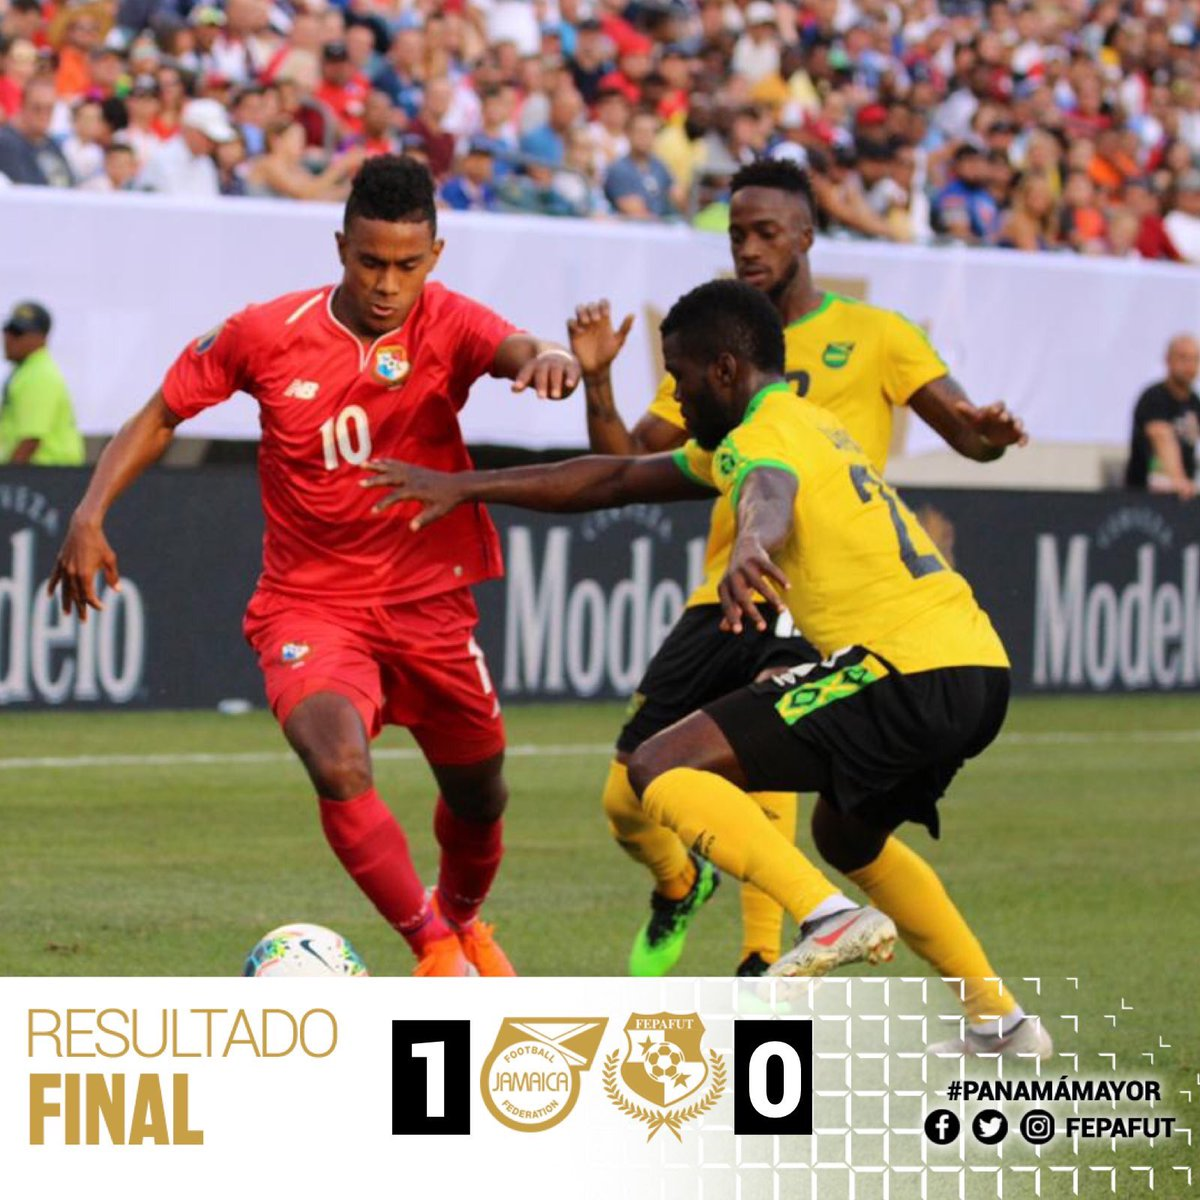 🇯🇲 1-0 🇵🇦 Yes! Yes! Our build up play was but the final ball wasn't great. Under the new football ruling the handball was definitely a penalty and it was perfectly put away.  A massive well done#ReggaeBoyz #2019GoldCup 🏆 #JFFLive #ReggaeBoyz #GoldCup #ReggaeFootball